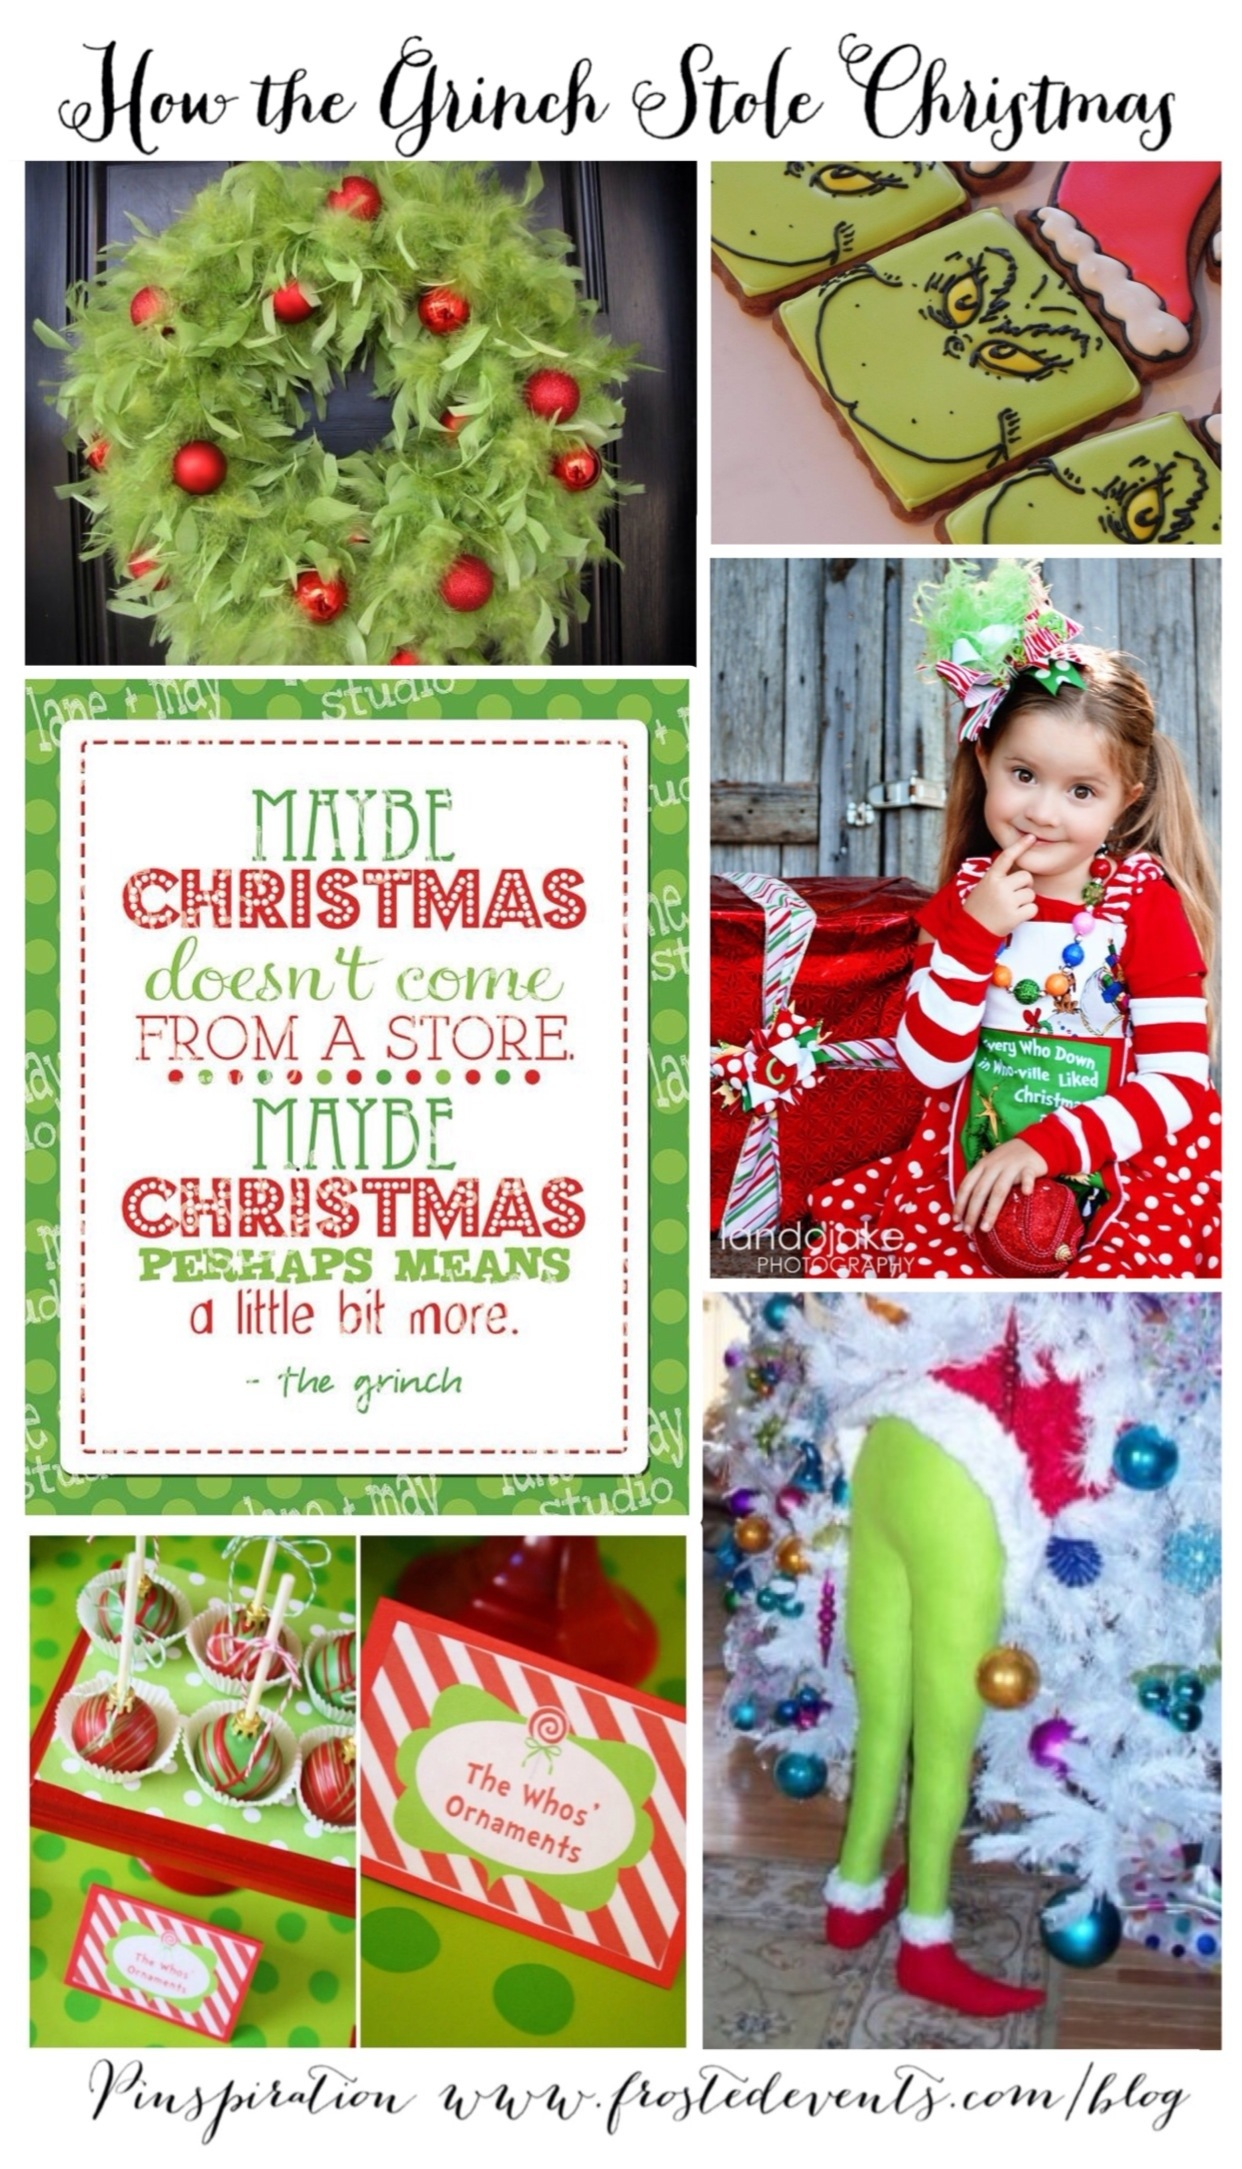 follow us on pinterest the grinch how the grinch stole christmas inspired by the grinch movie 2018